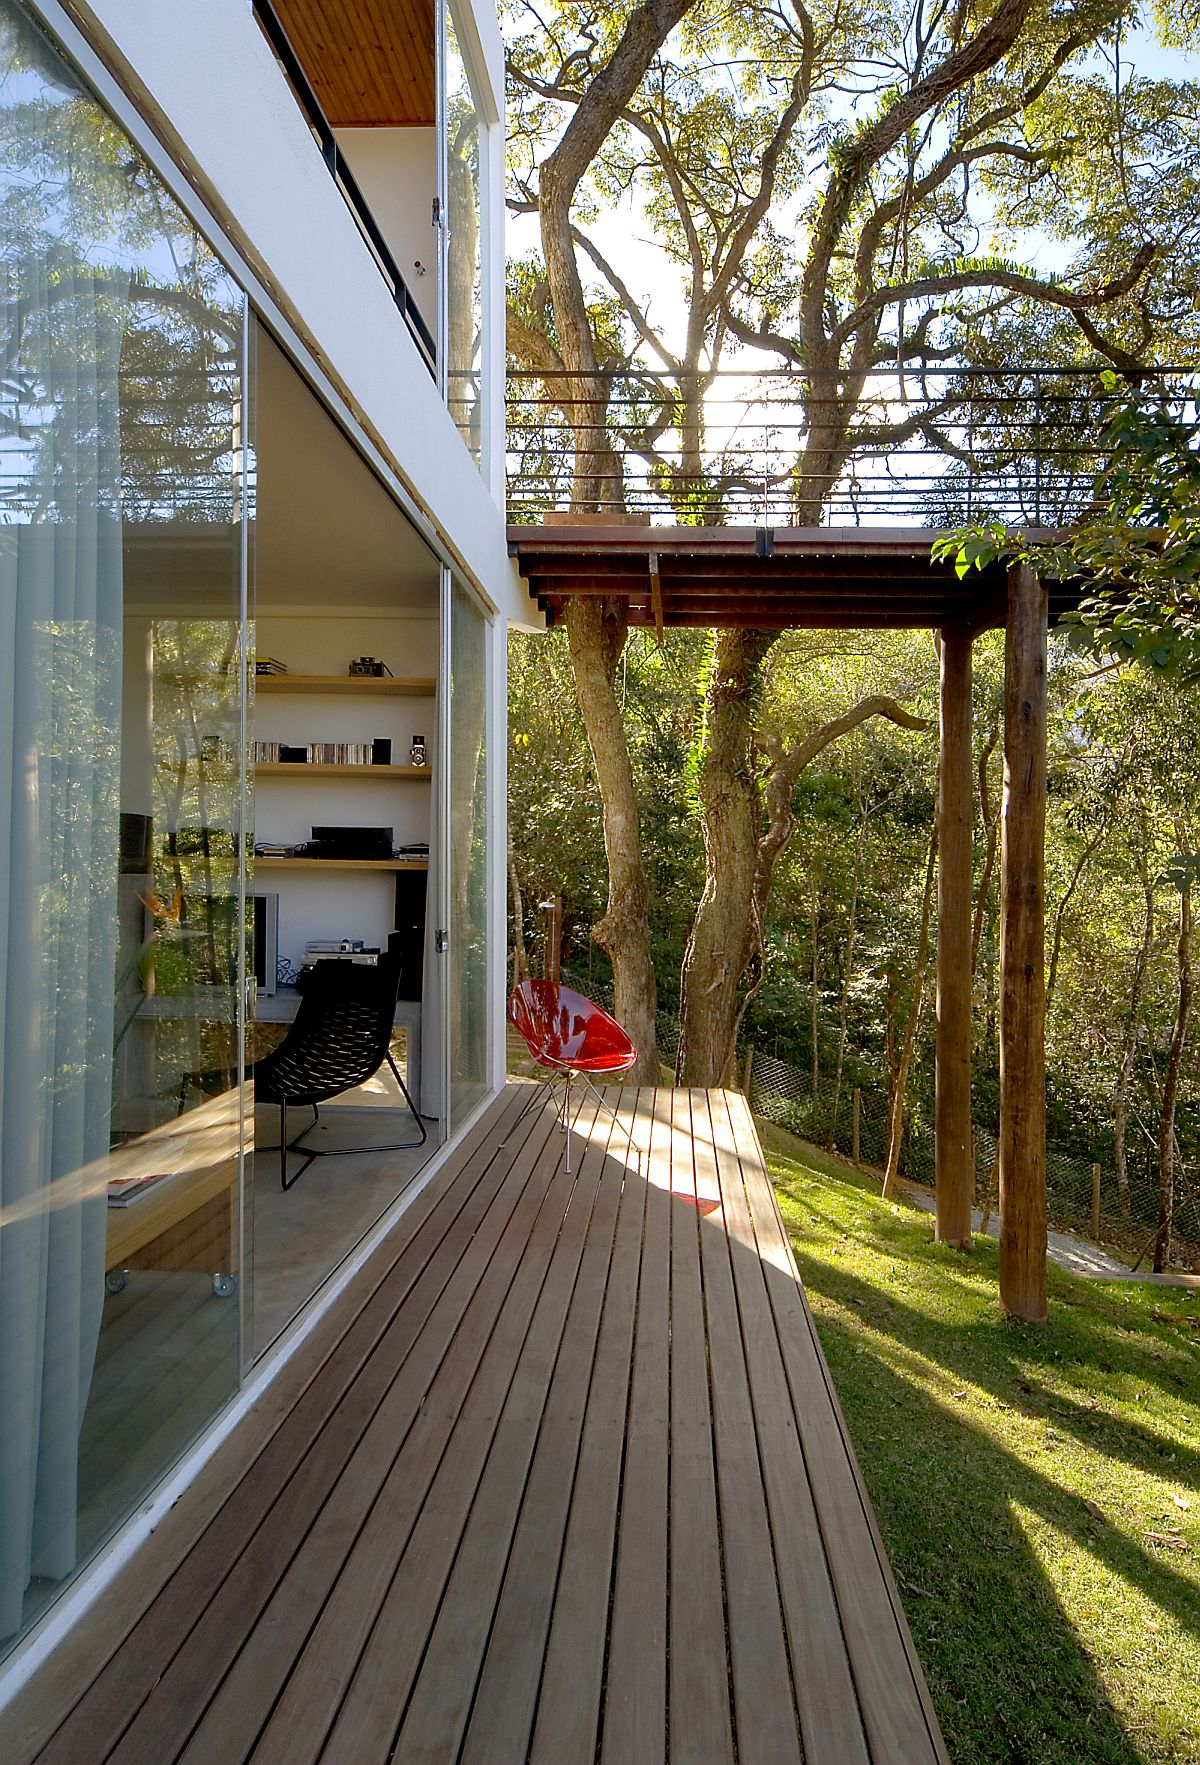 Sheltered walkways around the house offer a relaxing escape